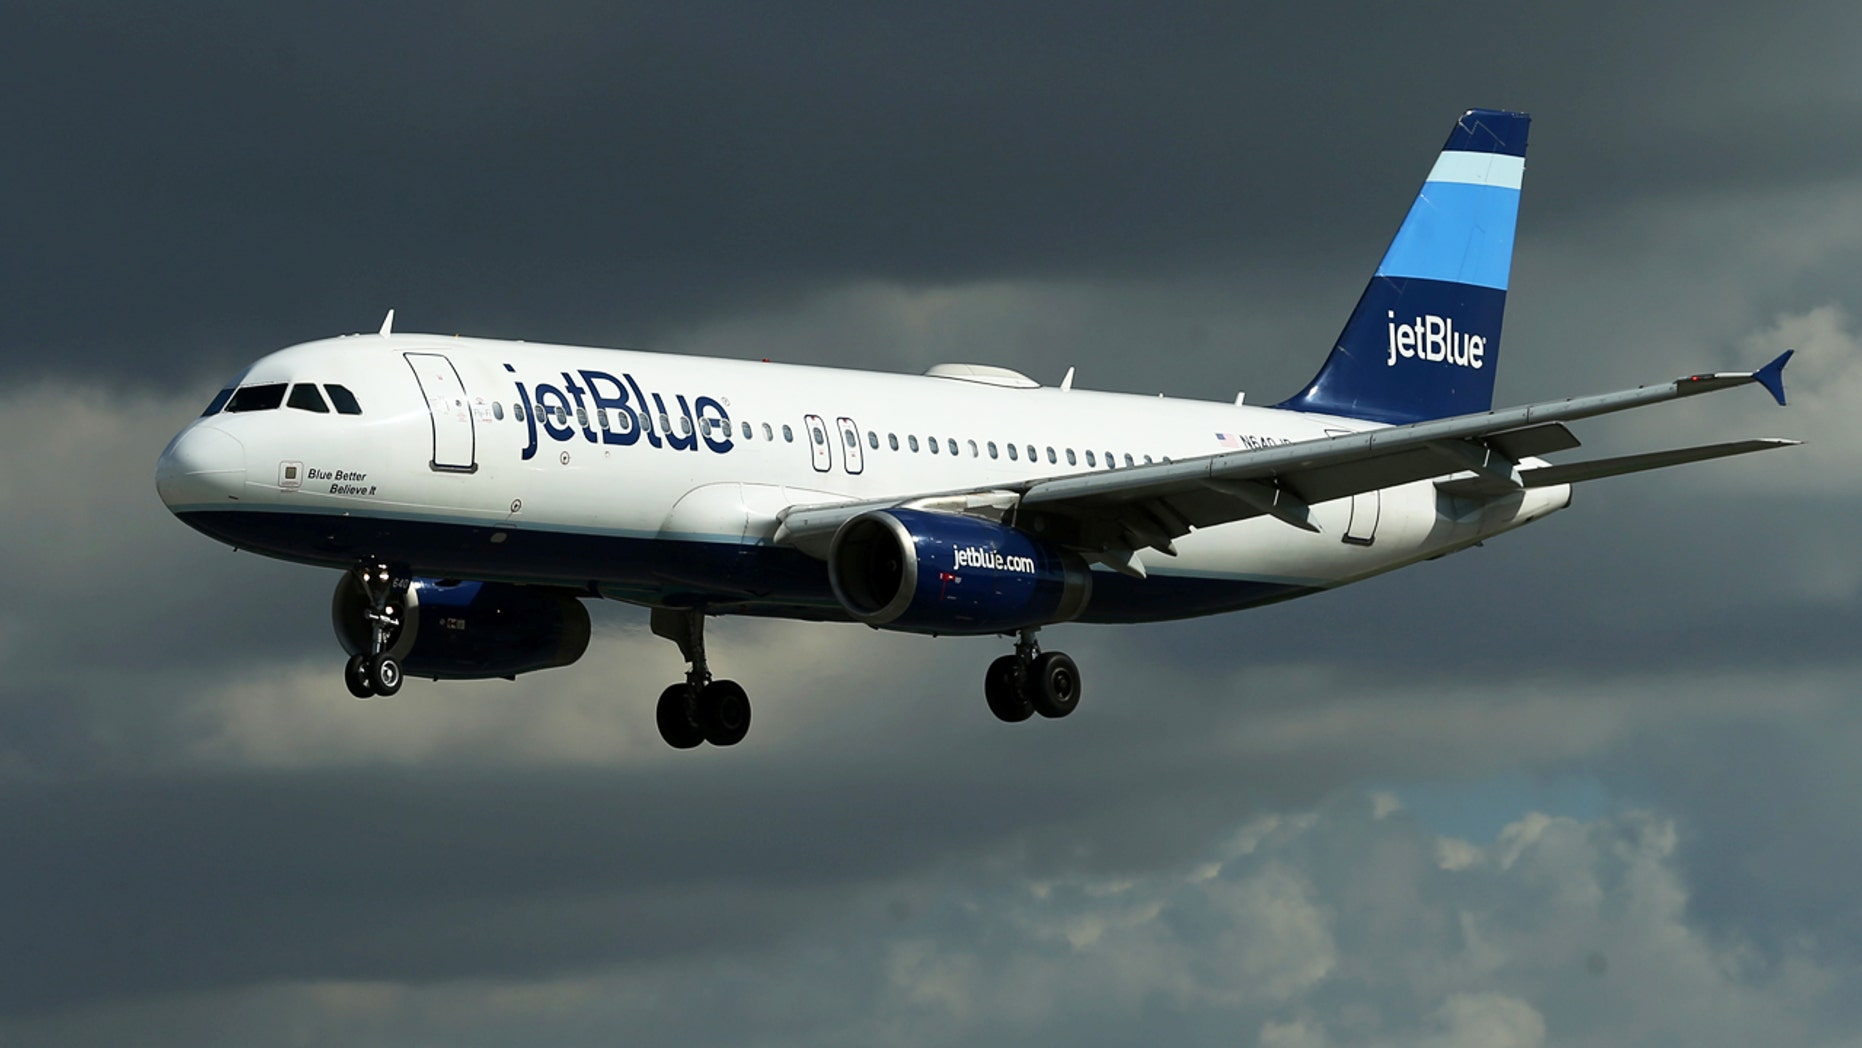 A JetBlue aircraft comes in to land at Long Beach Airport in Long Beach, California, U.S., January 24, 2017.   REUTERS/Mike Blake - RTSX75H